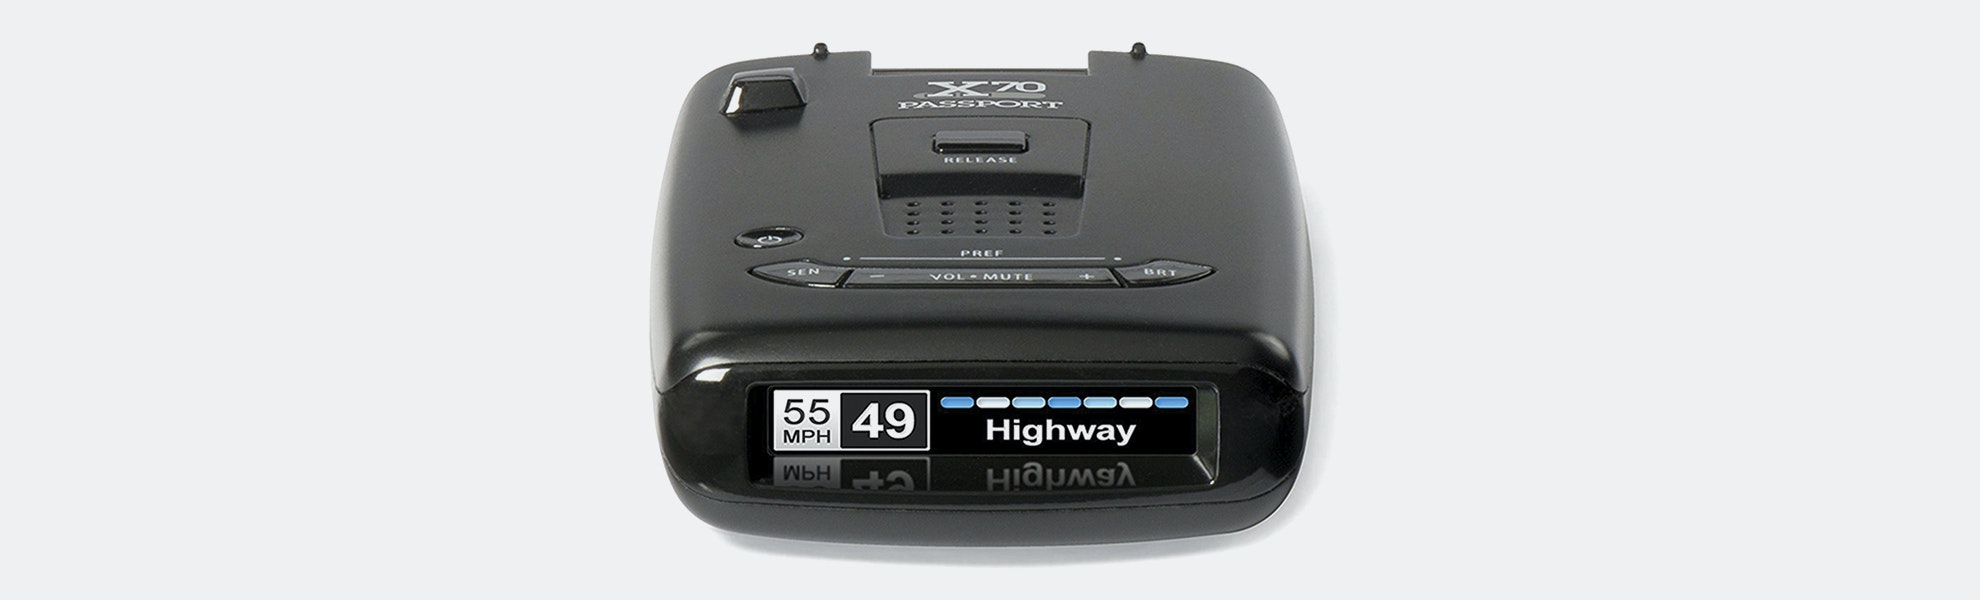 Escort Passport X70 Laser Radar Detector